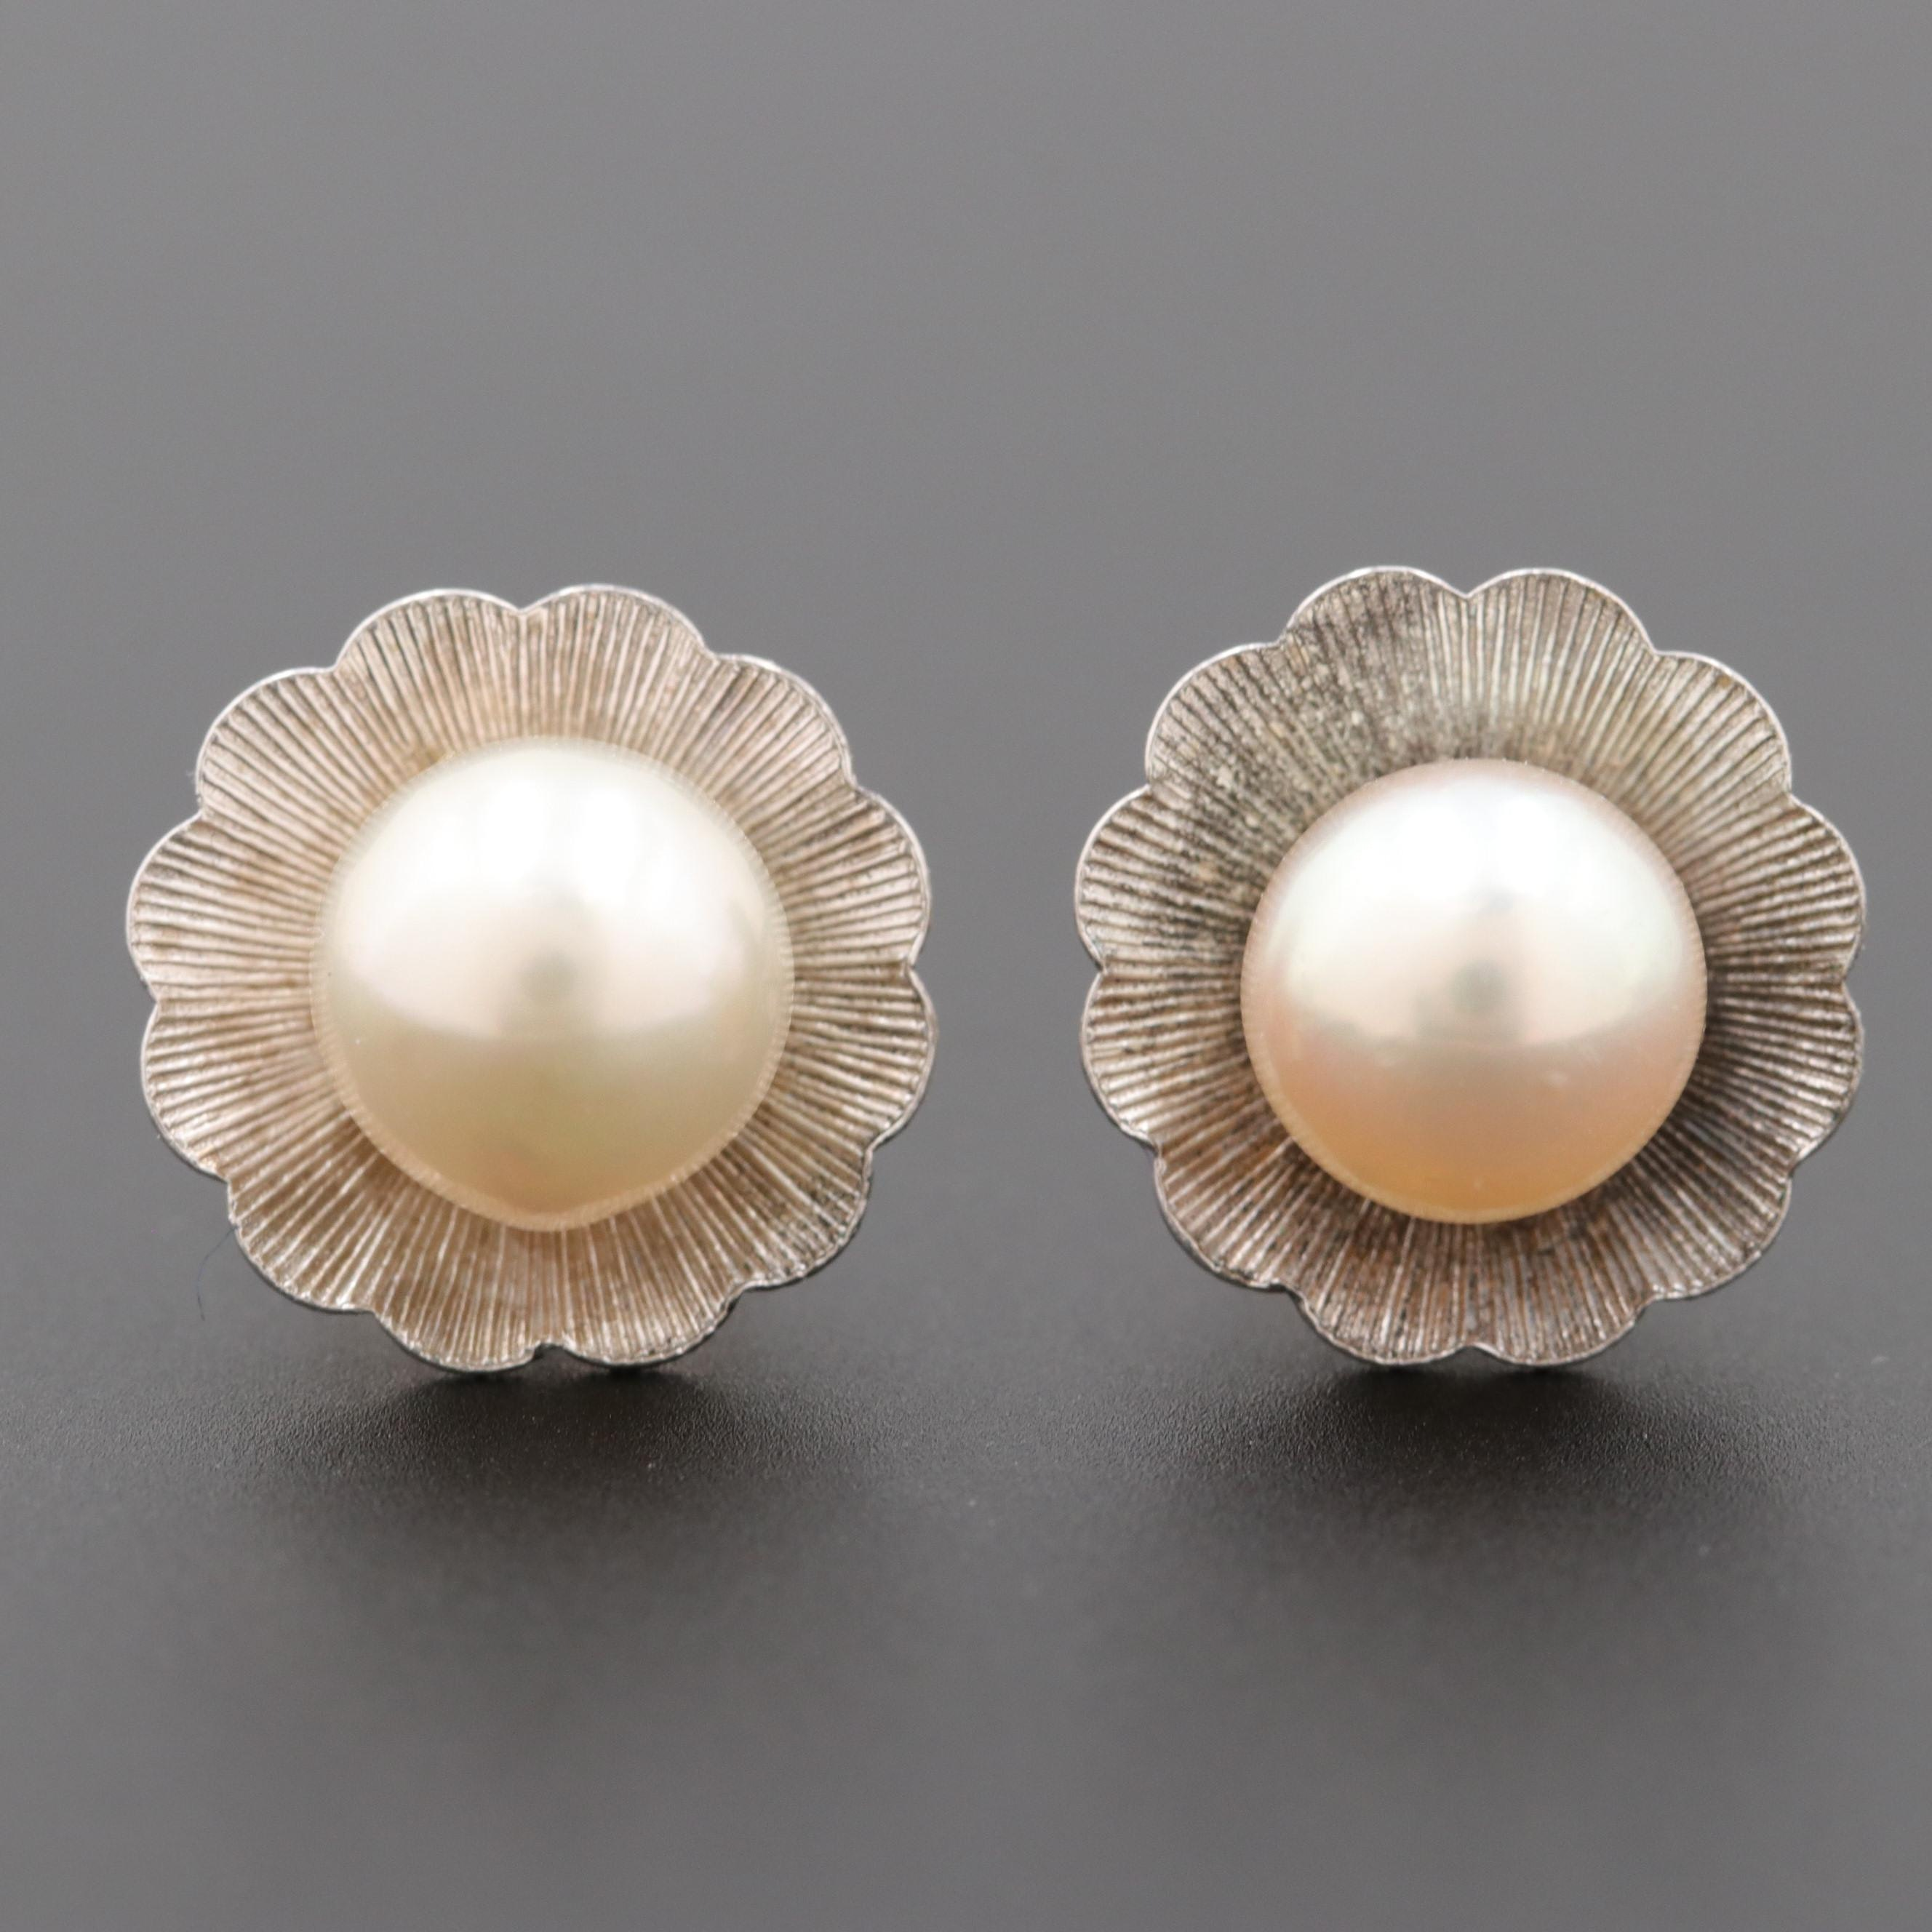 14K White Gold and Silver Tone Cultured Pearl Stud Earrings